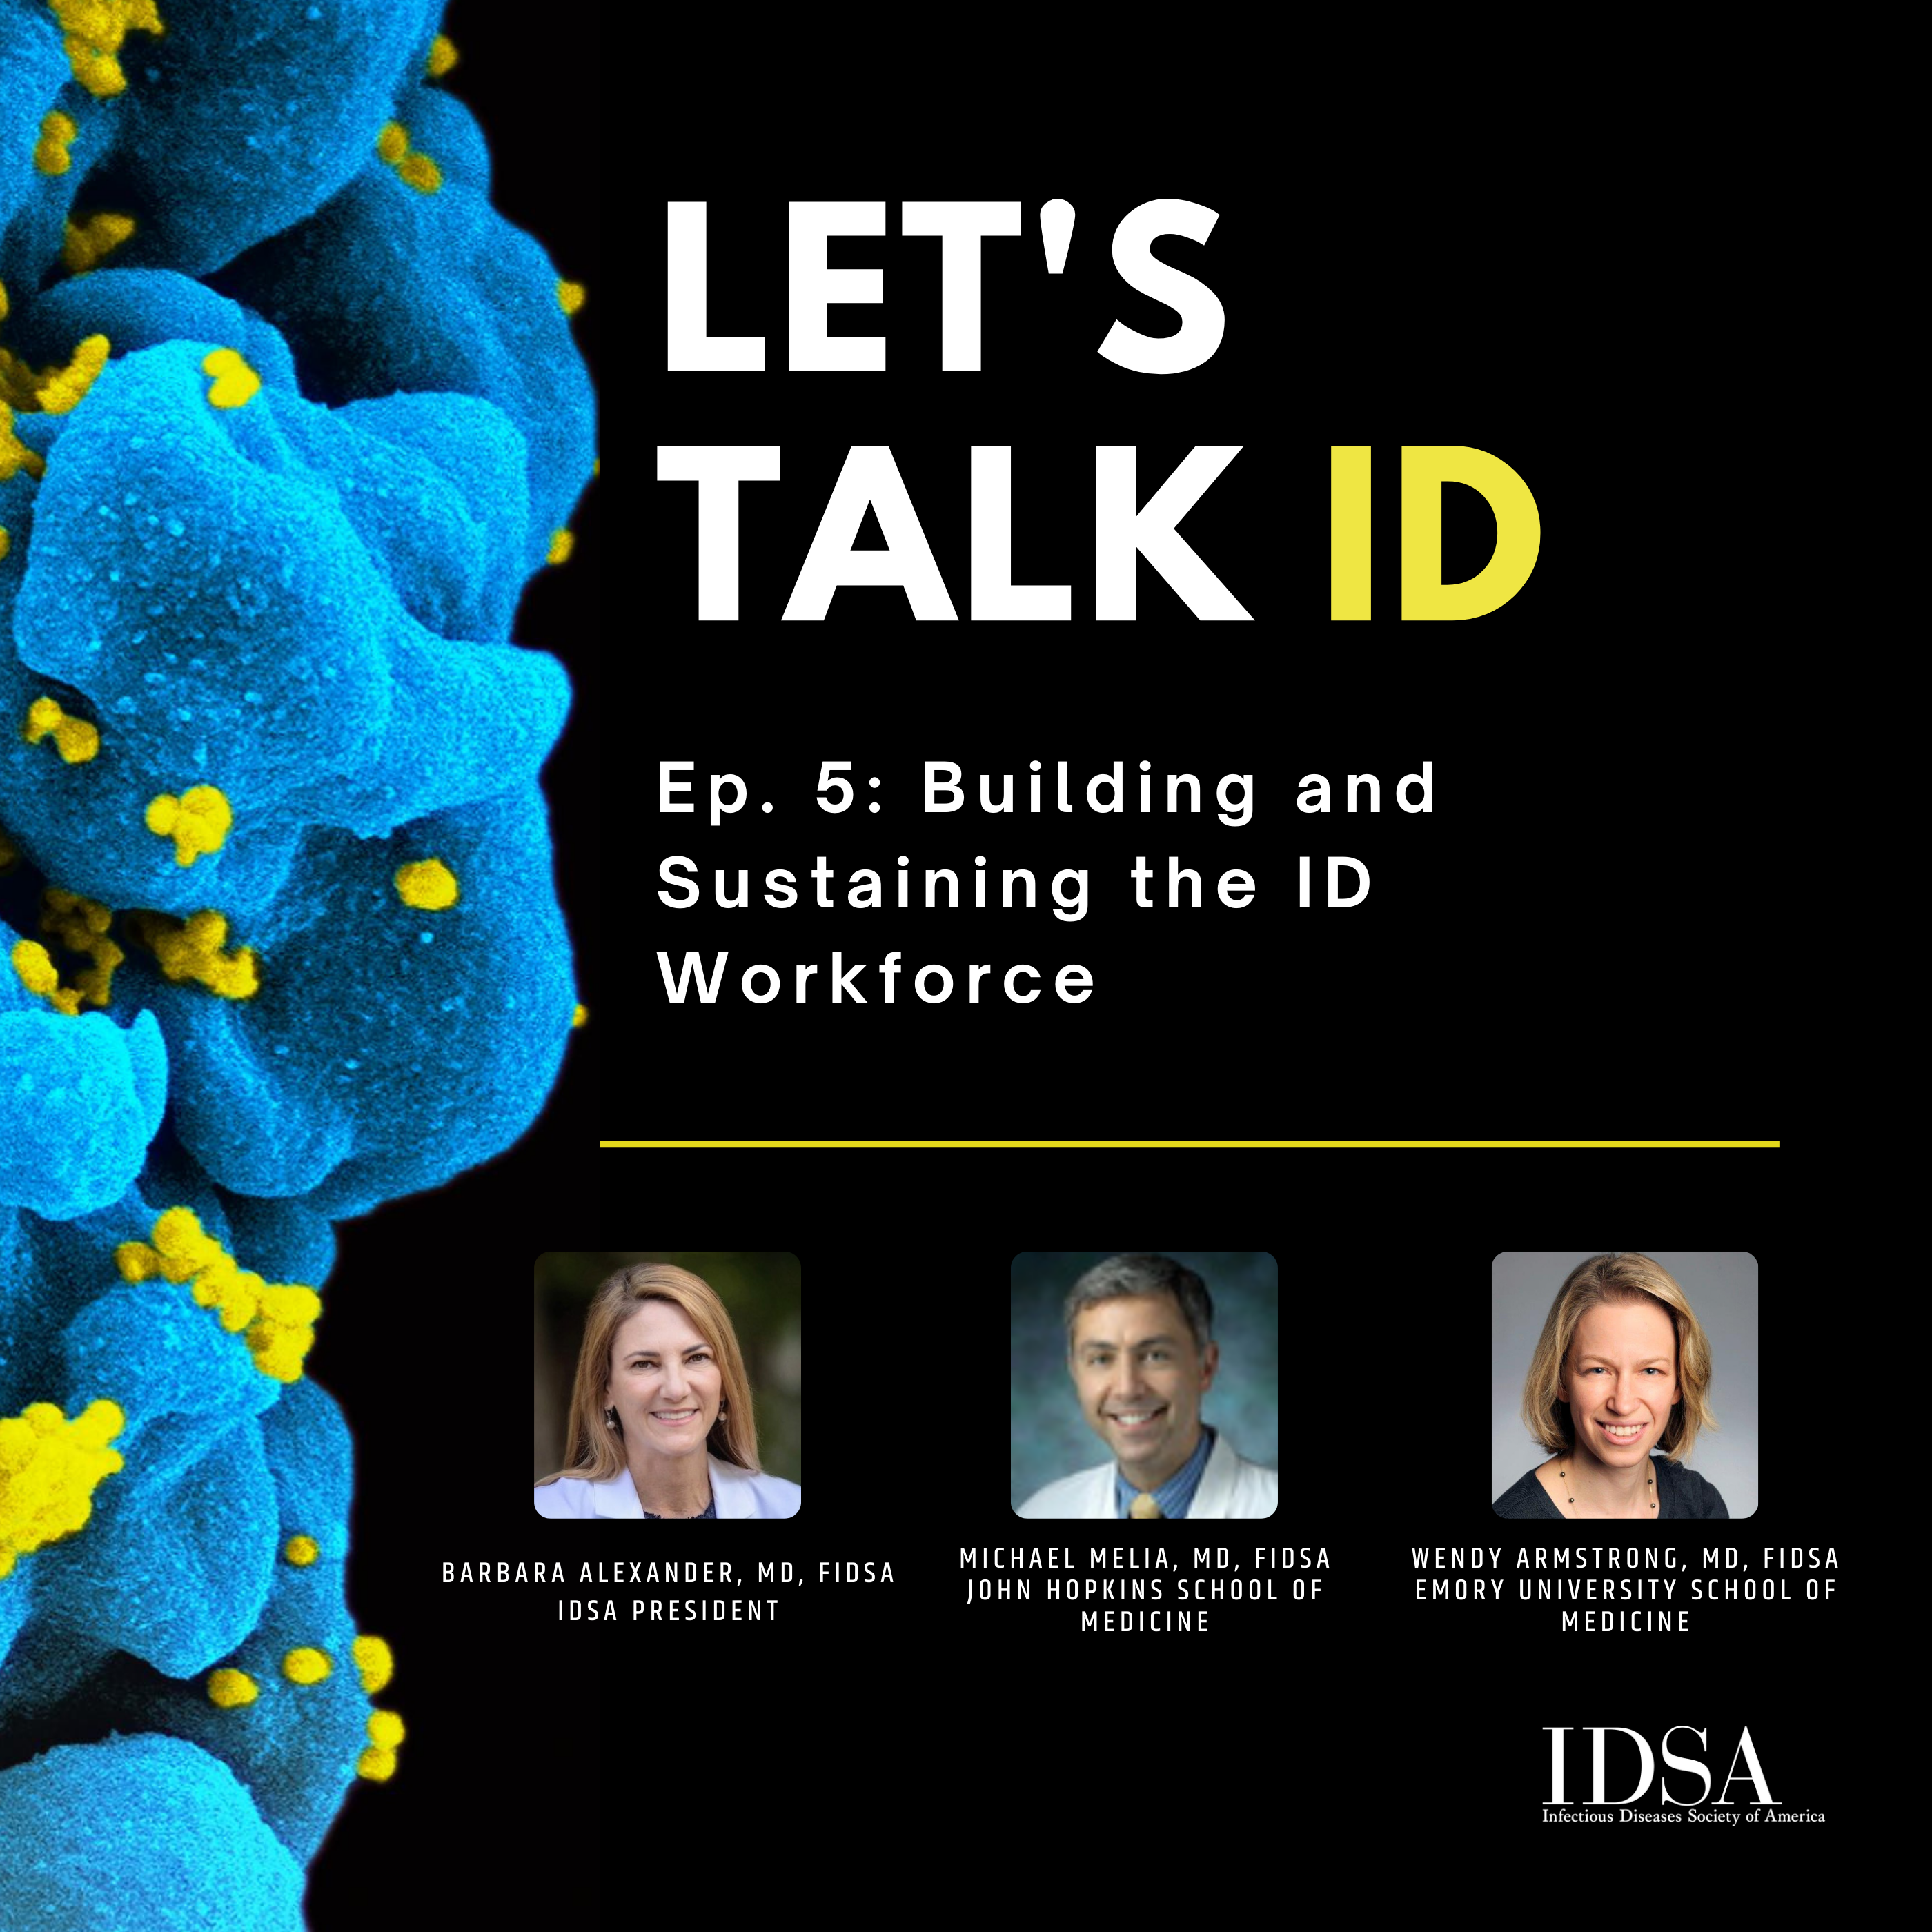 Let's Talk ID: Building and Sustaining the ID Workforce